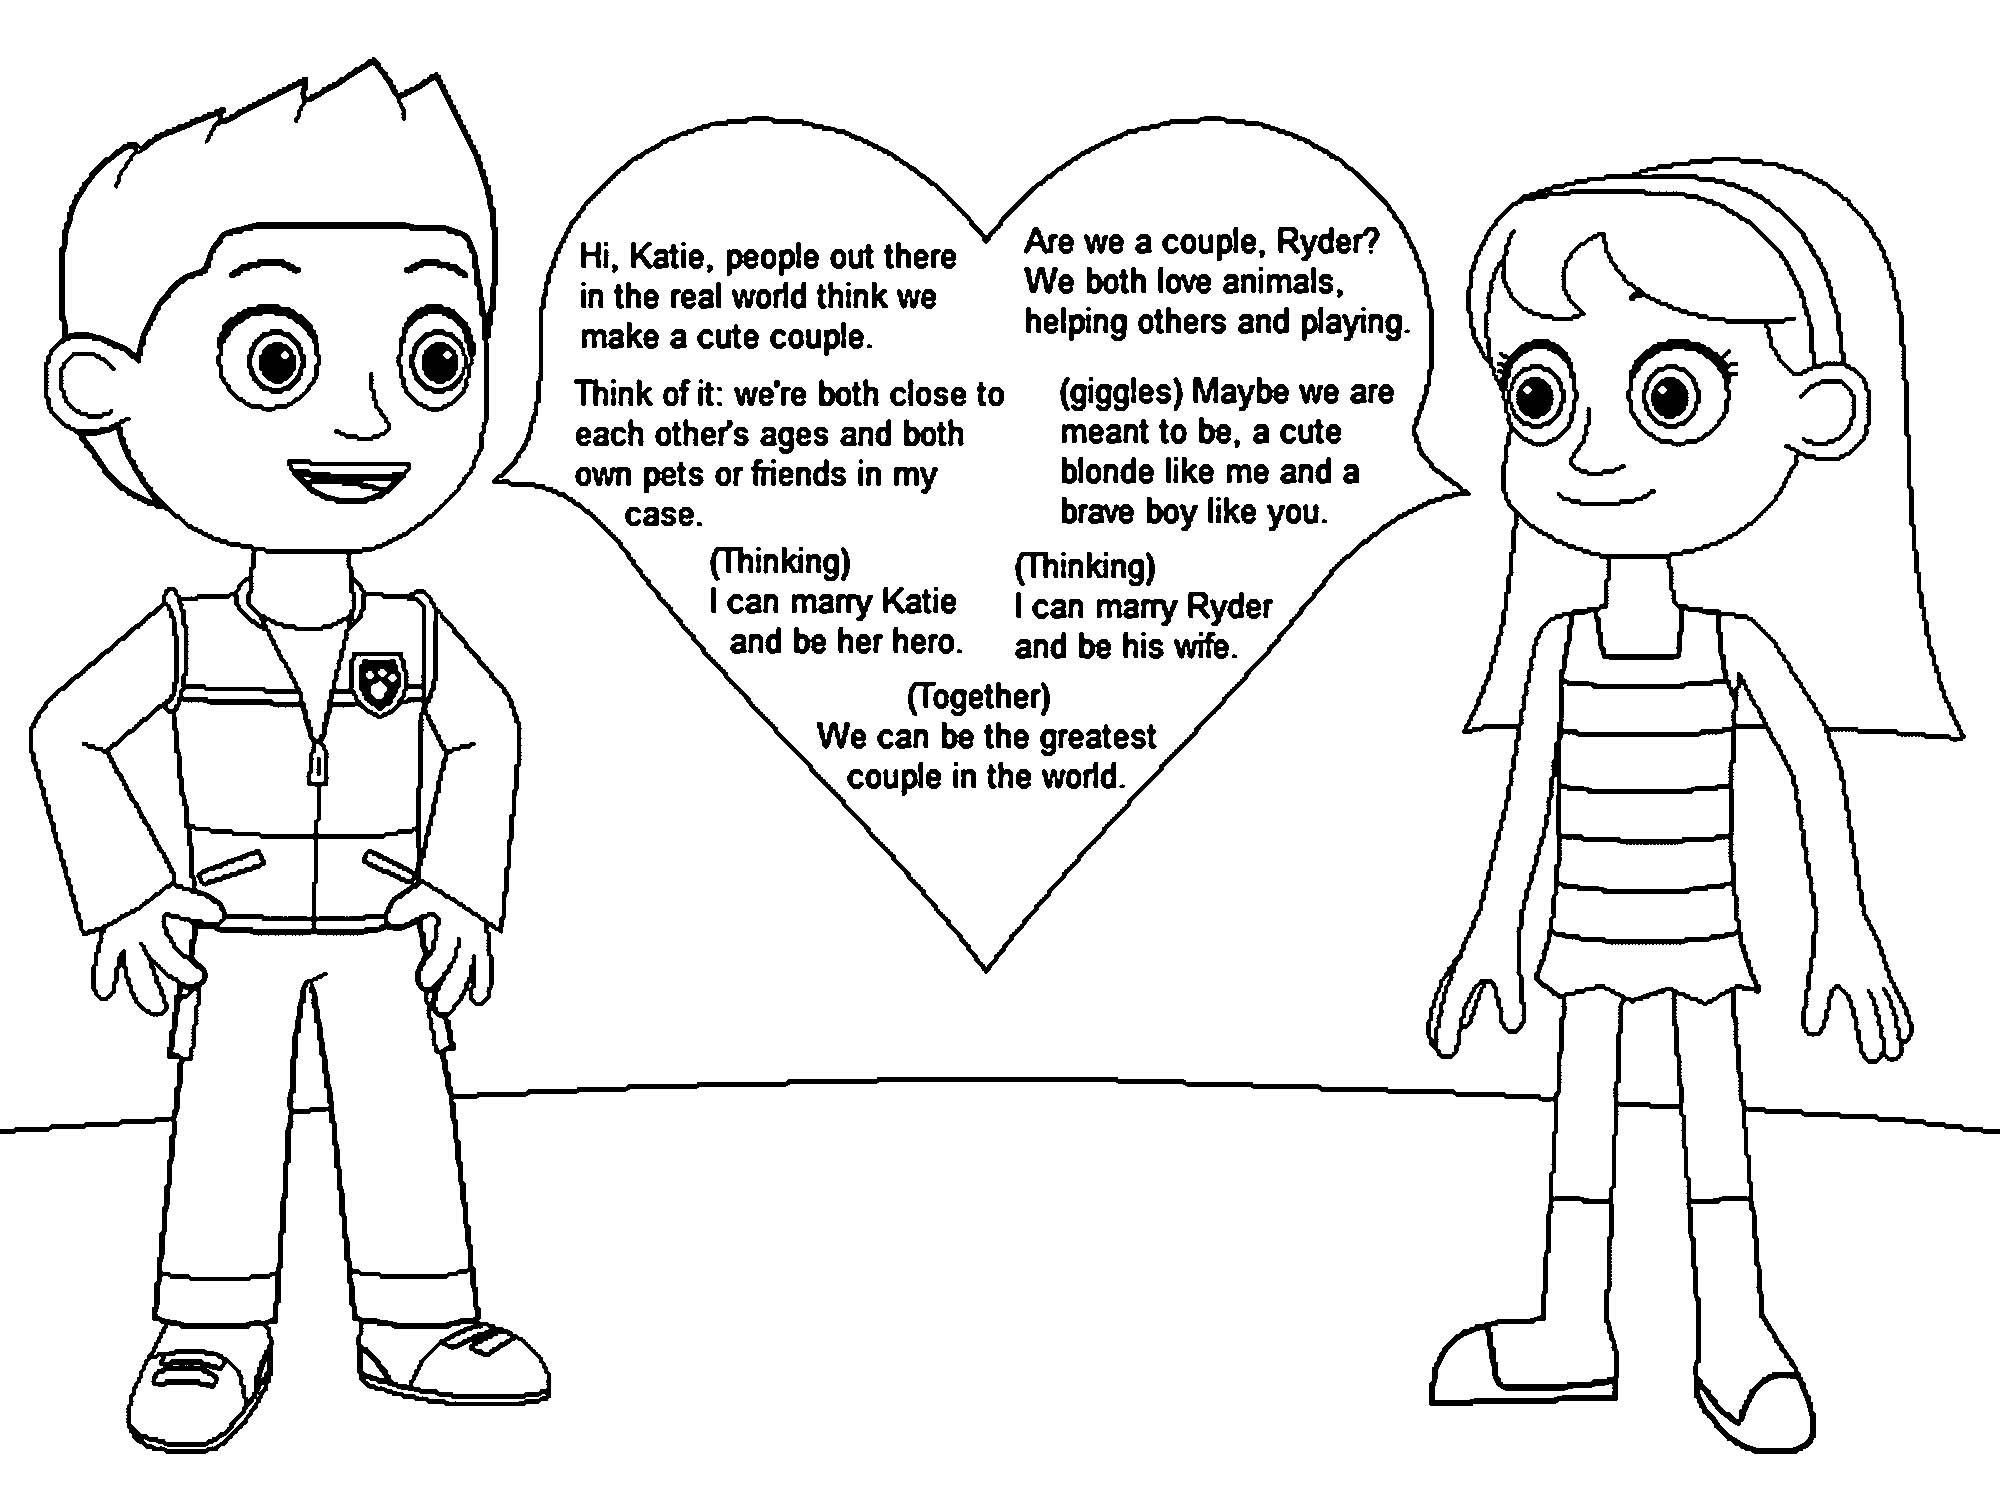 Ryder S And Katie S Love Messages Gamekirby Drjyb Coloring Page